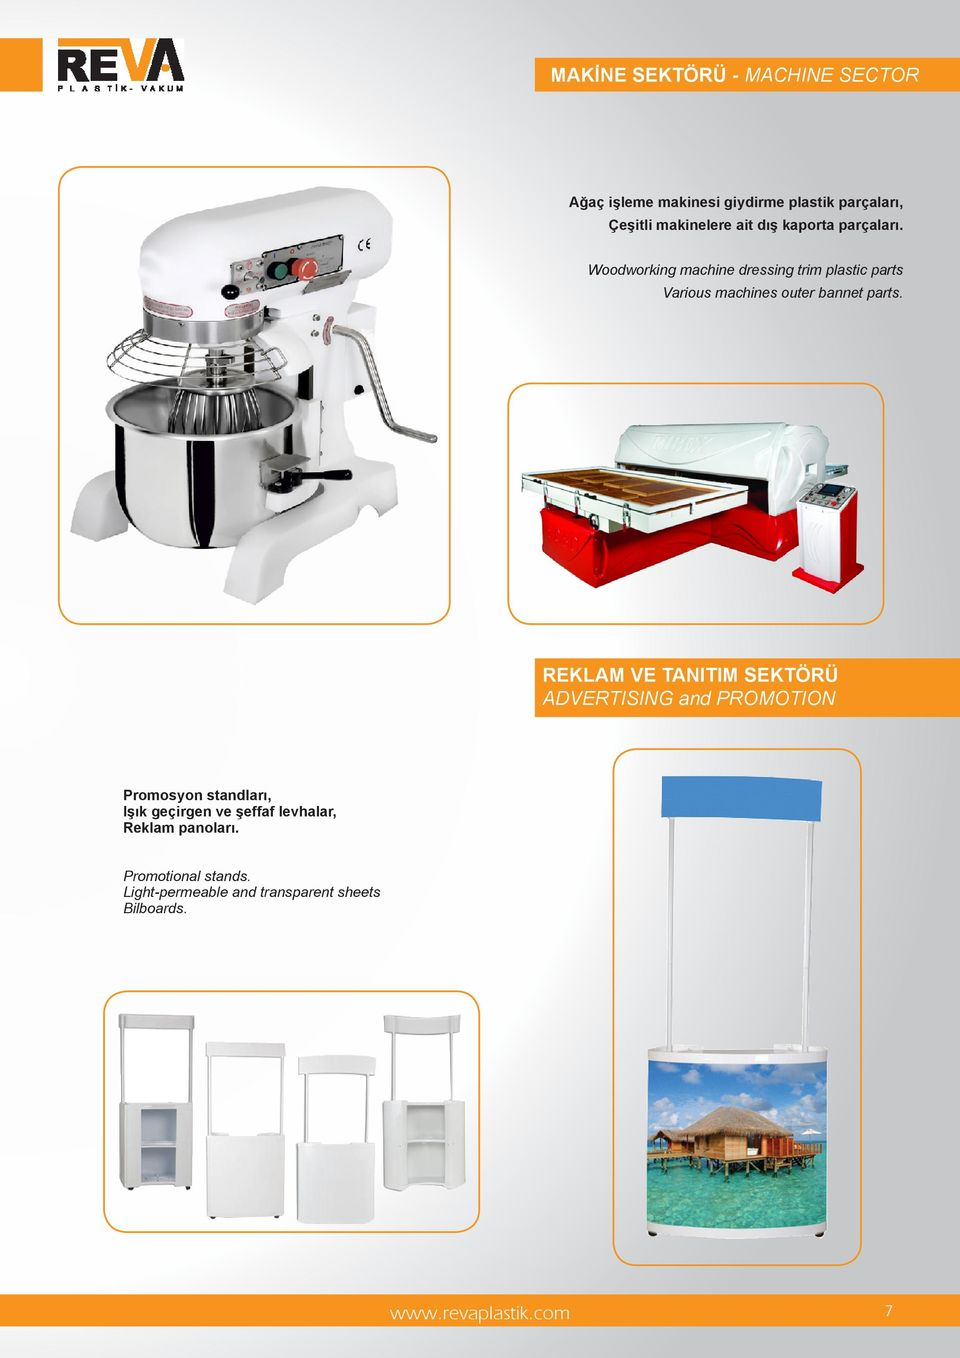 Woodworking machine dressing trim plastic parts Various machines outer bannet parts.